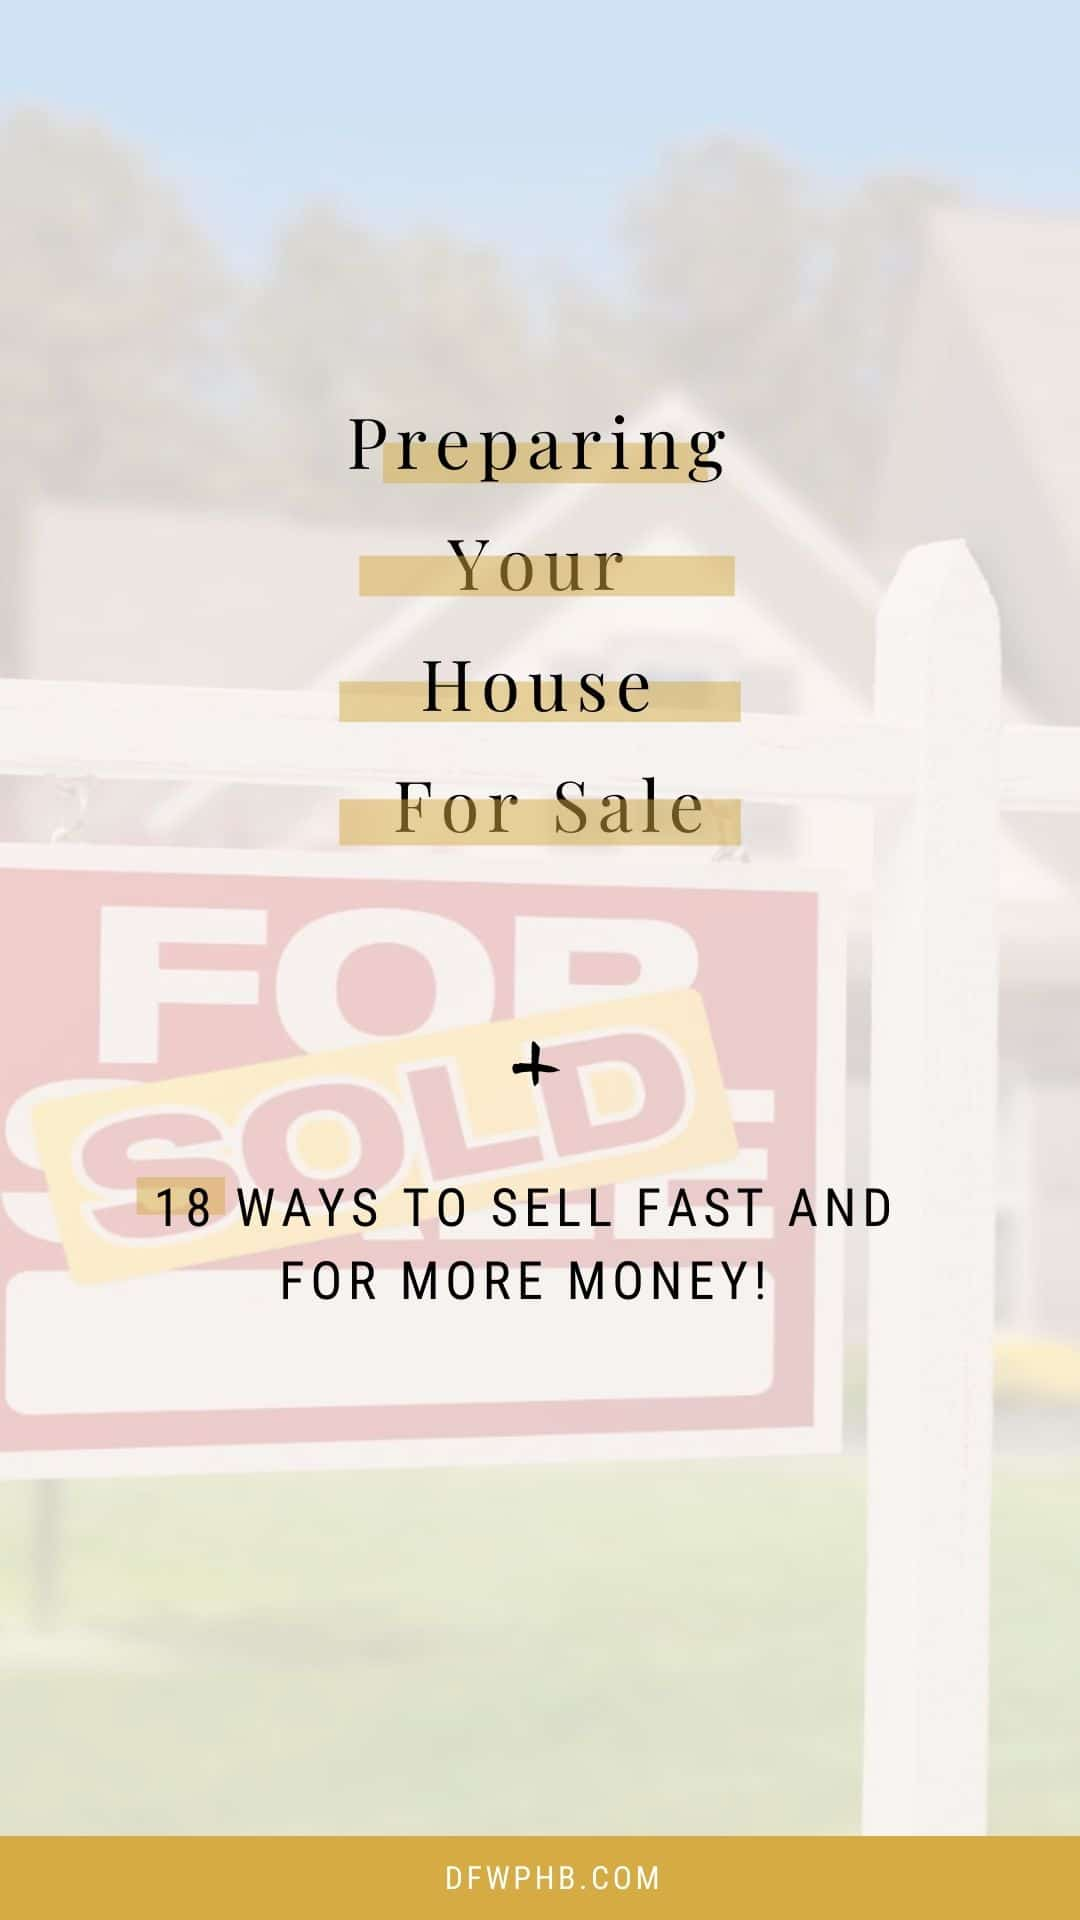 A guide to Preparing Your House For Sale